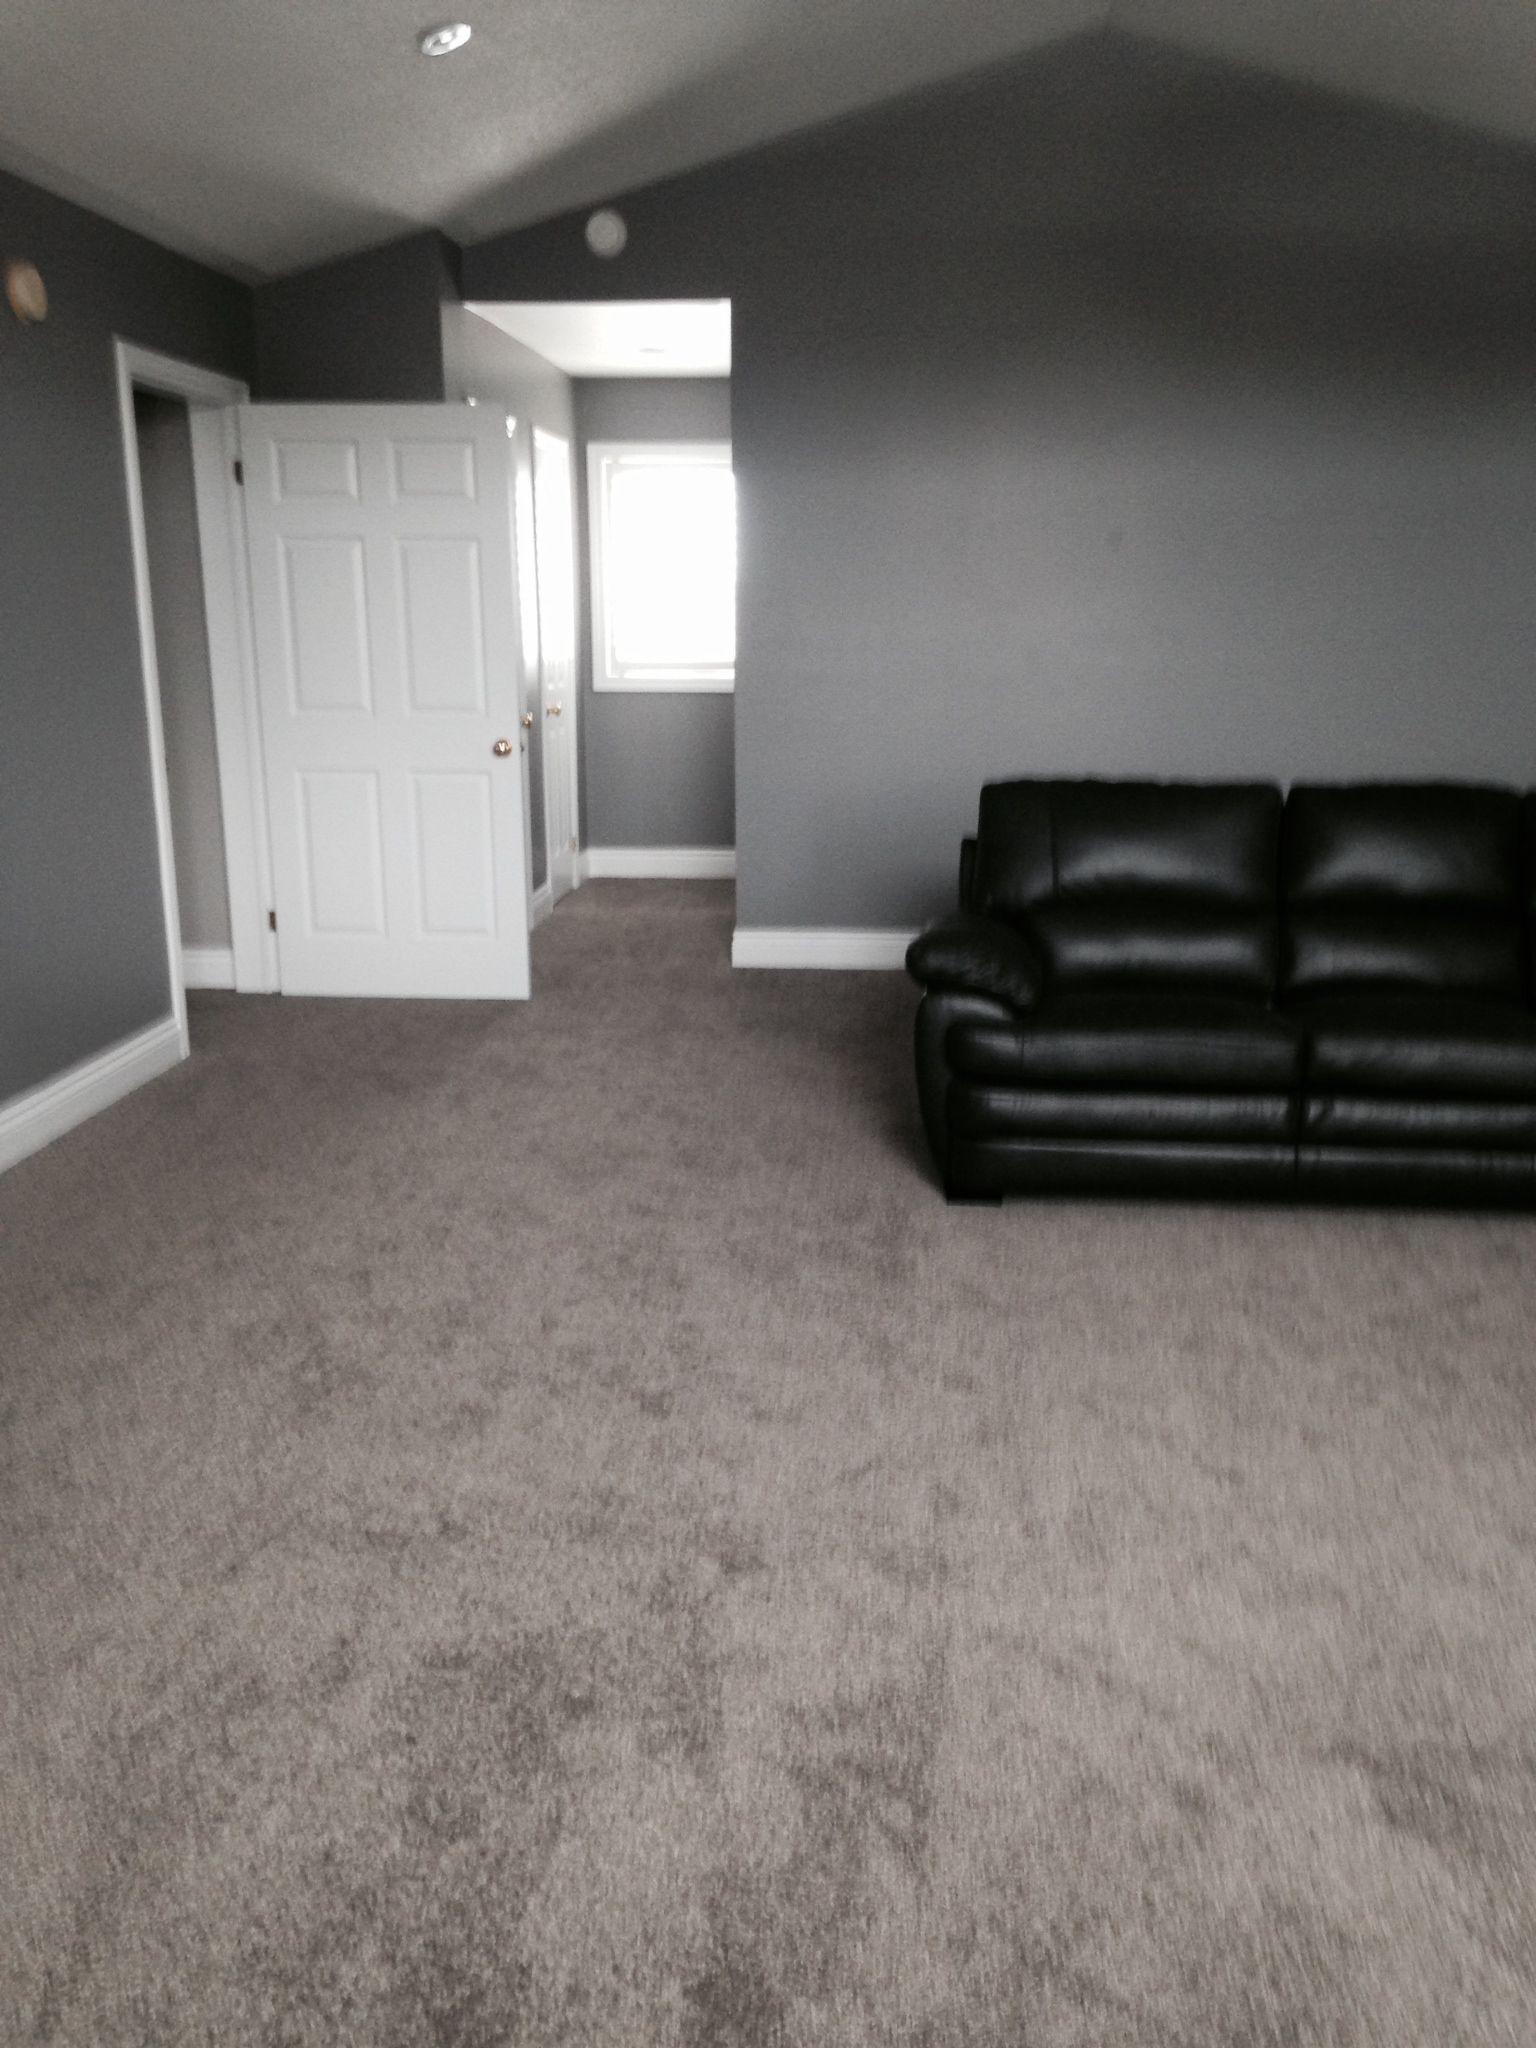 Living Room Carpet Colors Paint Colors With Dark Brown Carpet Google Search Making A